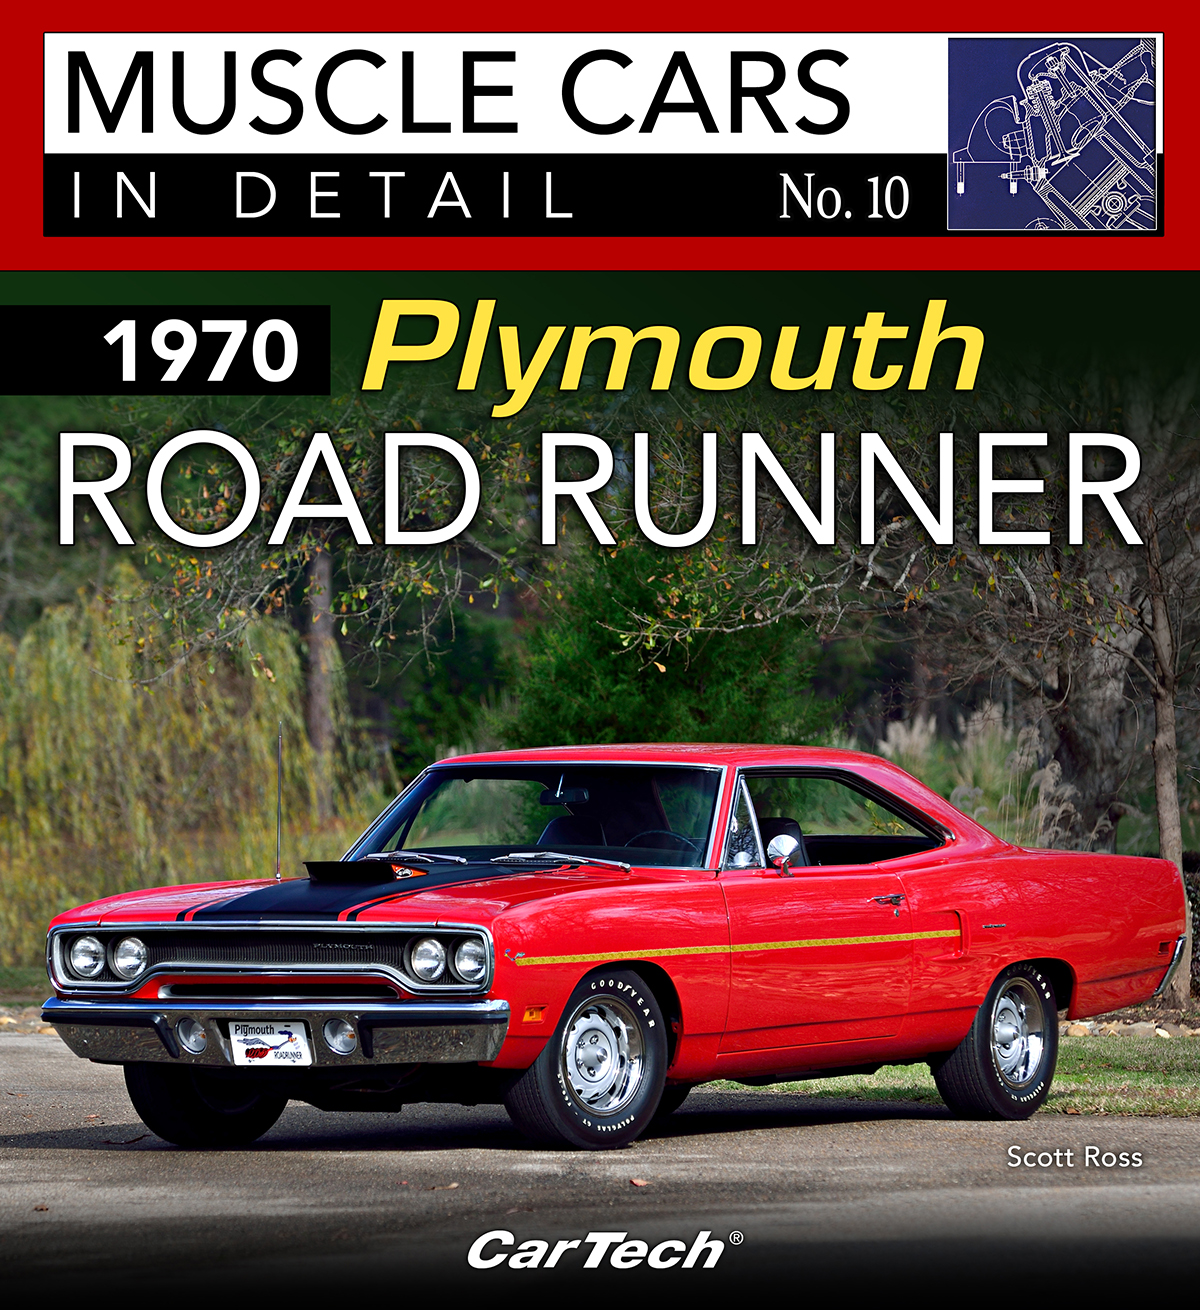 1970 Plymouth Road Runner Wiring Diagram Color Electrical 69 Hemi Vin Code Fender Specs Book 383 440 1967 Gto